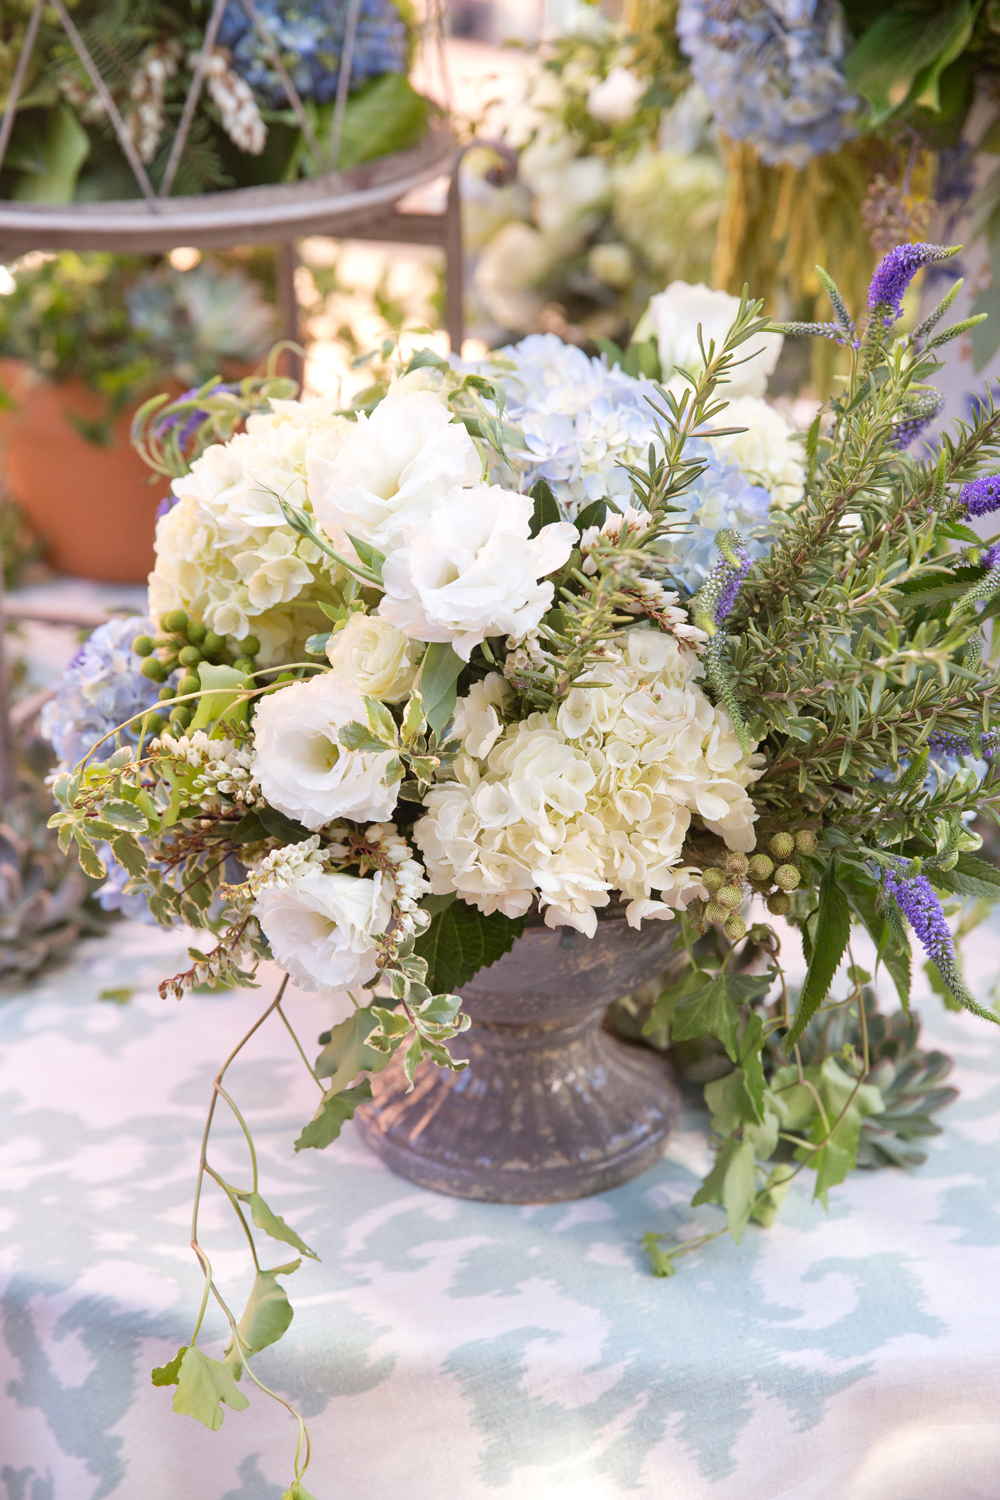 White, green and pale blue flower arrangement